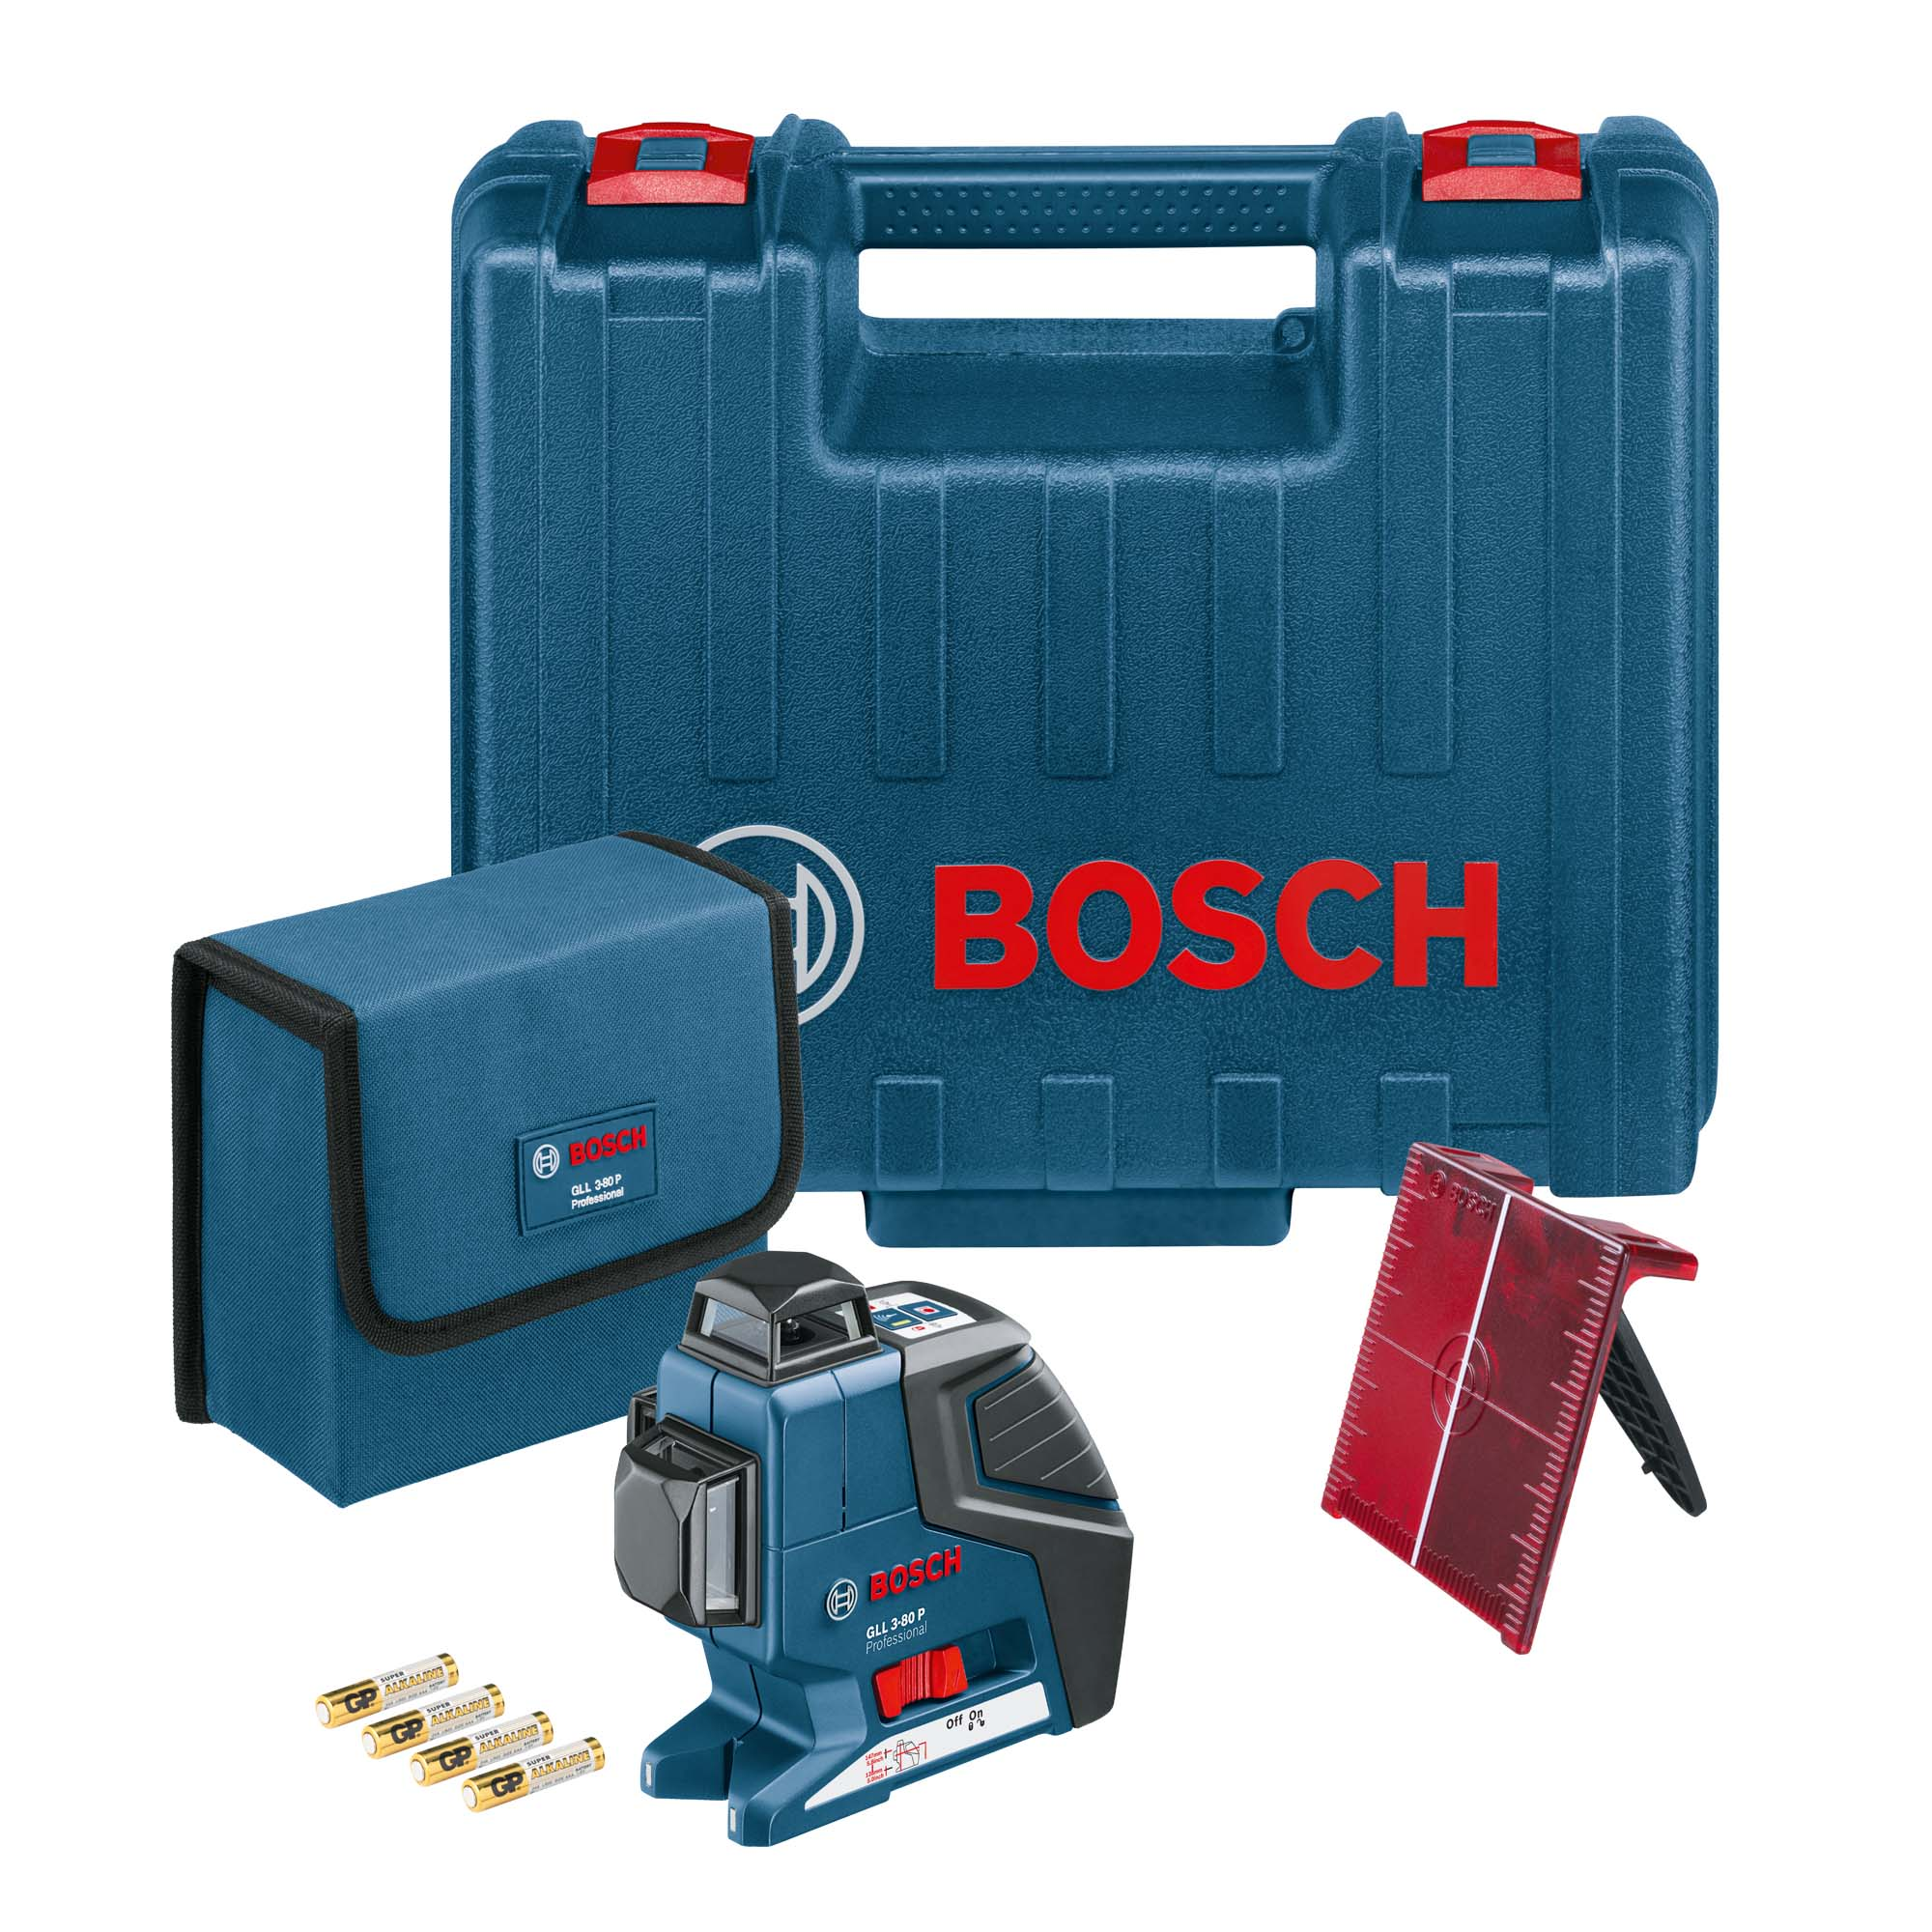 bosch gll 3 80 bosch self levelling 360 laser. Black Bedroom Furniture Sets. Home Design Ideas